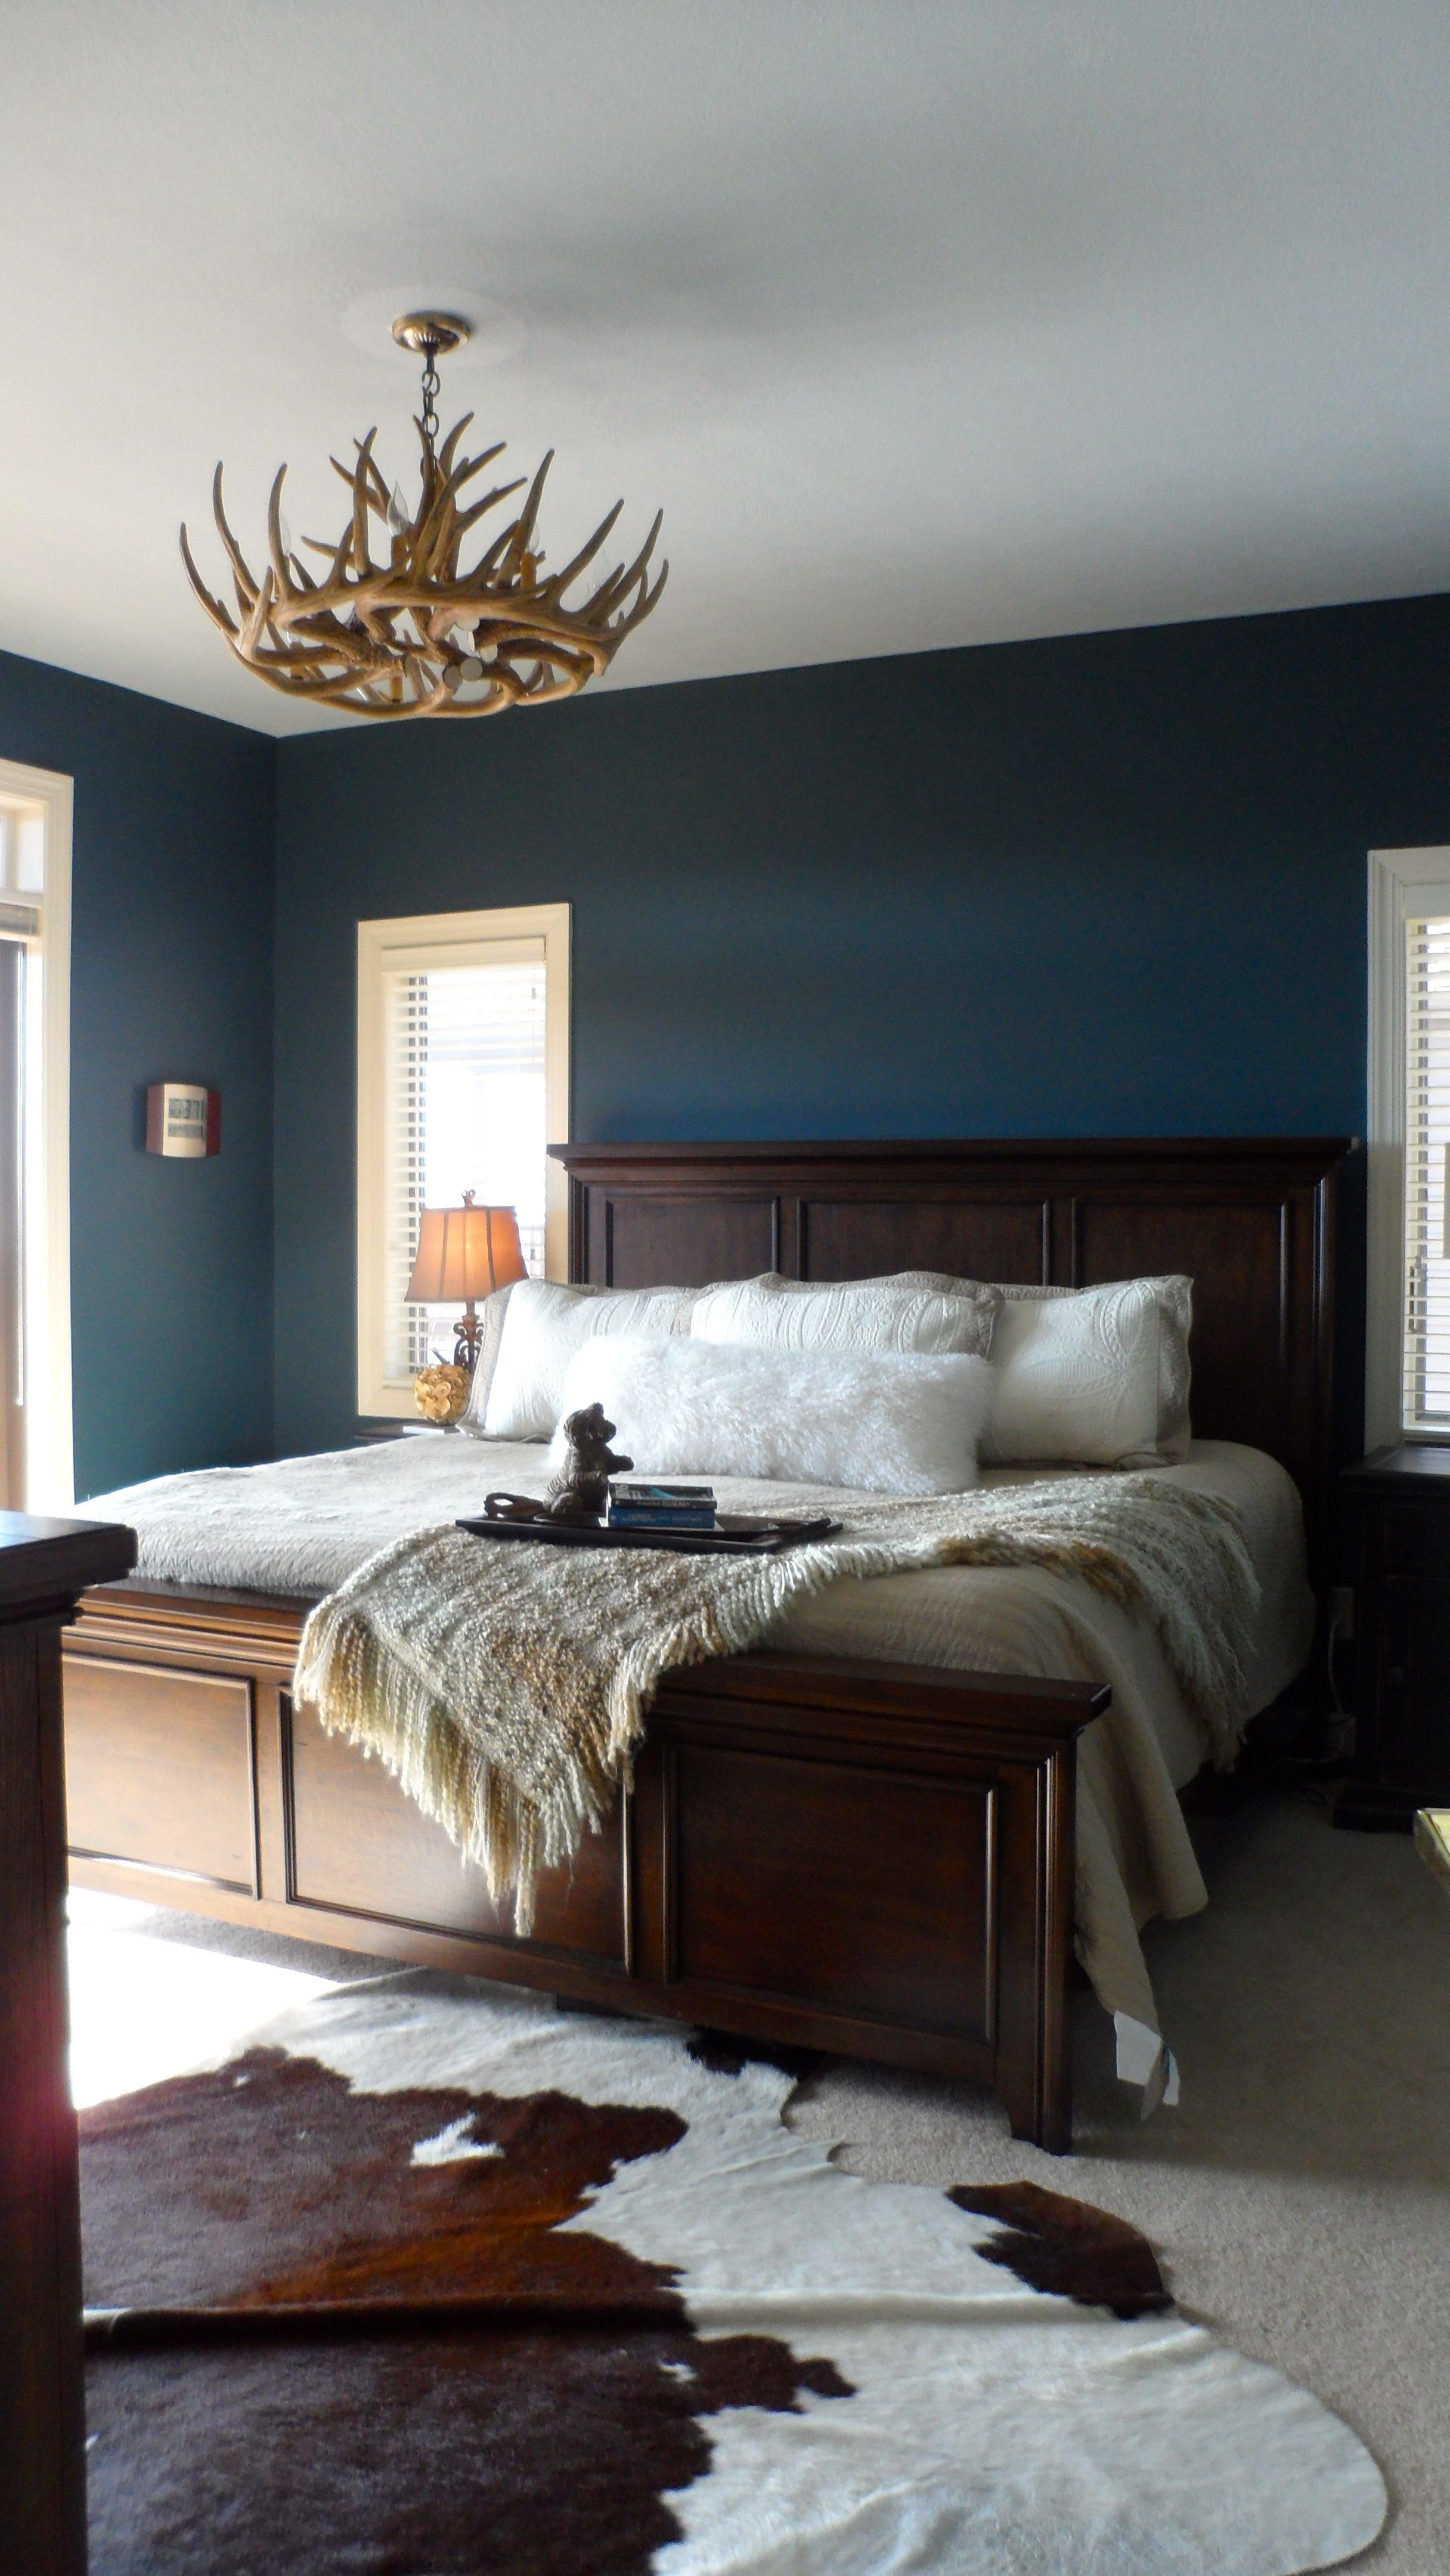 Bedroom Paint Colors 2020 With Navy Bed Set 2020 Bedroom Colors